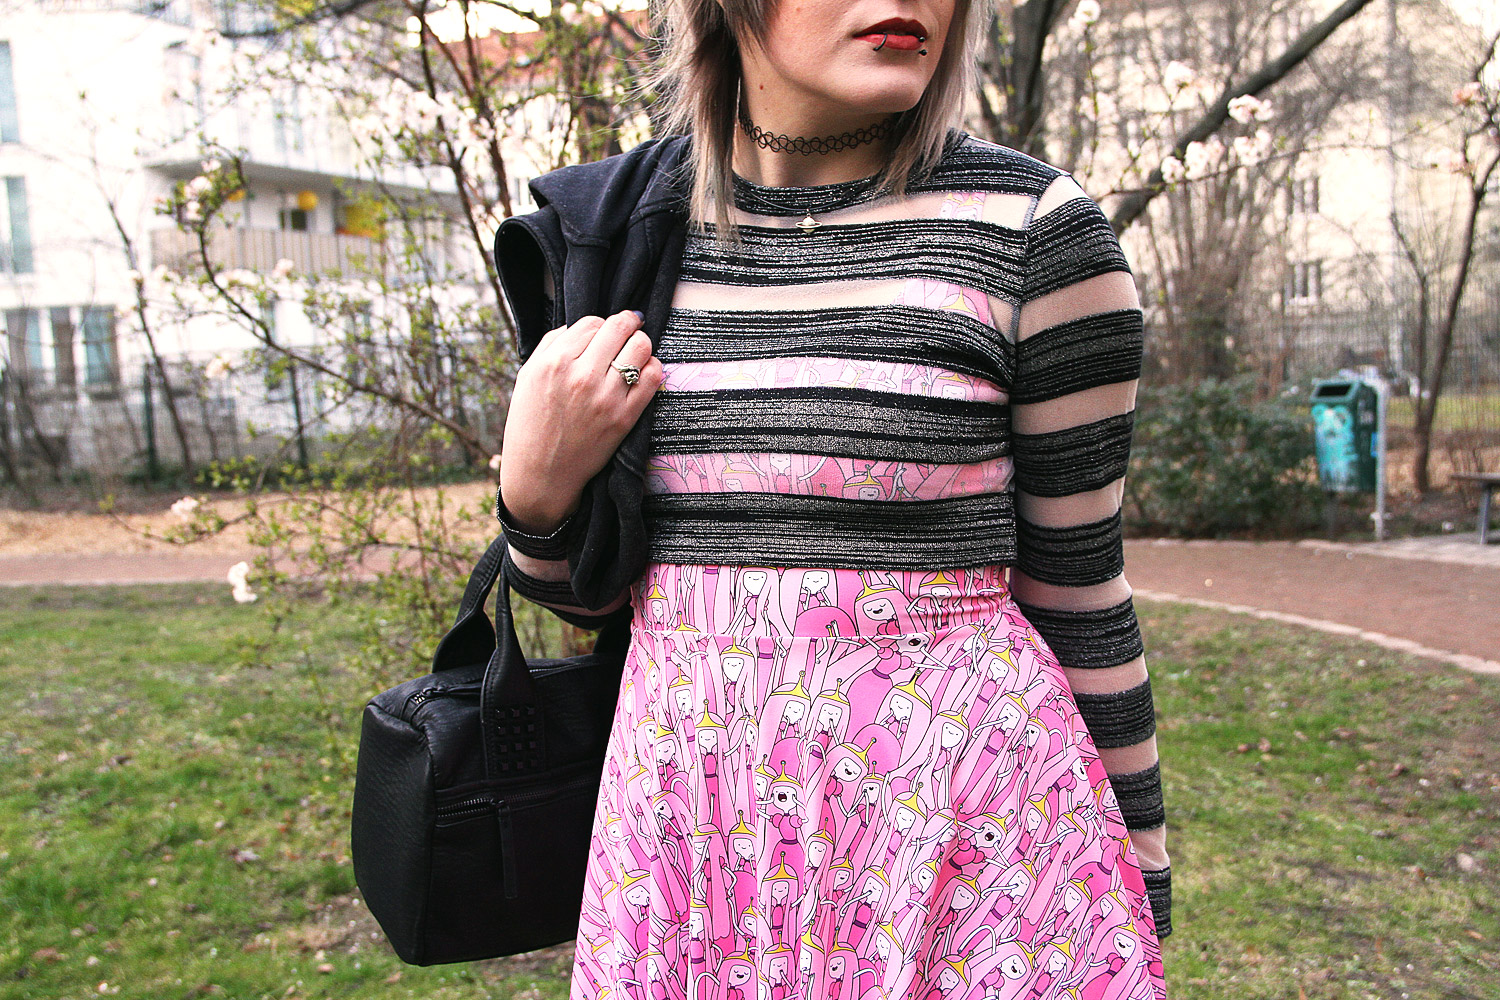 kirschblüte, princess bubblegum, black milk, black milk clothing, stripes, streifen, topshop, zara, nieten, h&m, used, ripped, c&A, jeans, skinny jeans, röhrenjeans, röhre, punk, pink, girly, skaterkleid, skater, skater dress, adventure time, snakebites, limecrime riot, tattoohalsband, planet, kette, cardigan, sweatjacke, divided, divided grey, edgy, kühl, cool, grey hair, graue haare, silber haare, silver hair, glitter, glitzer, unif, creepers, spikes, grim creeper